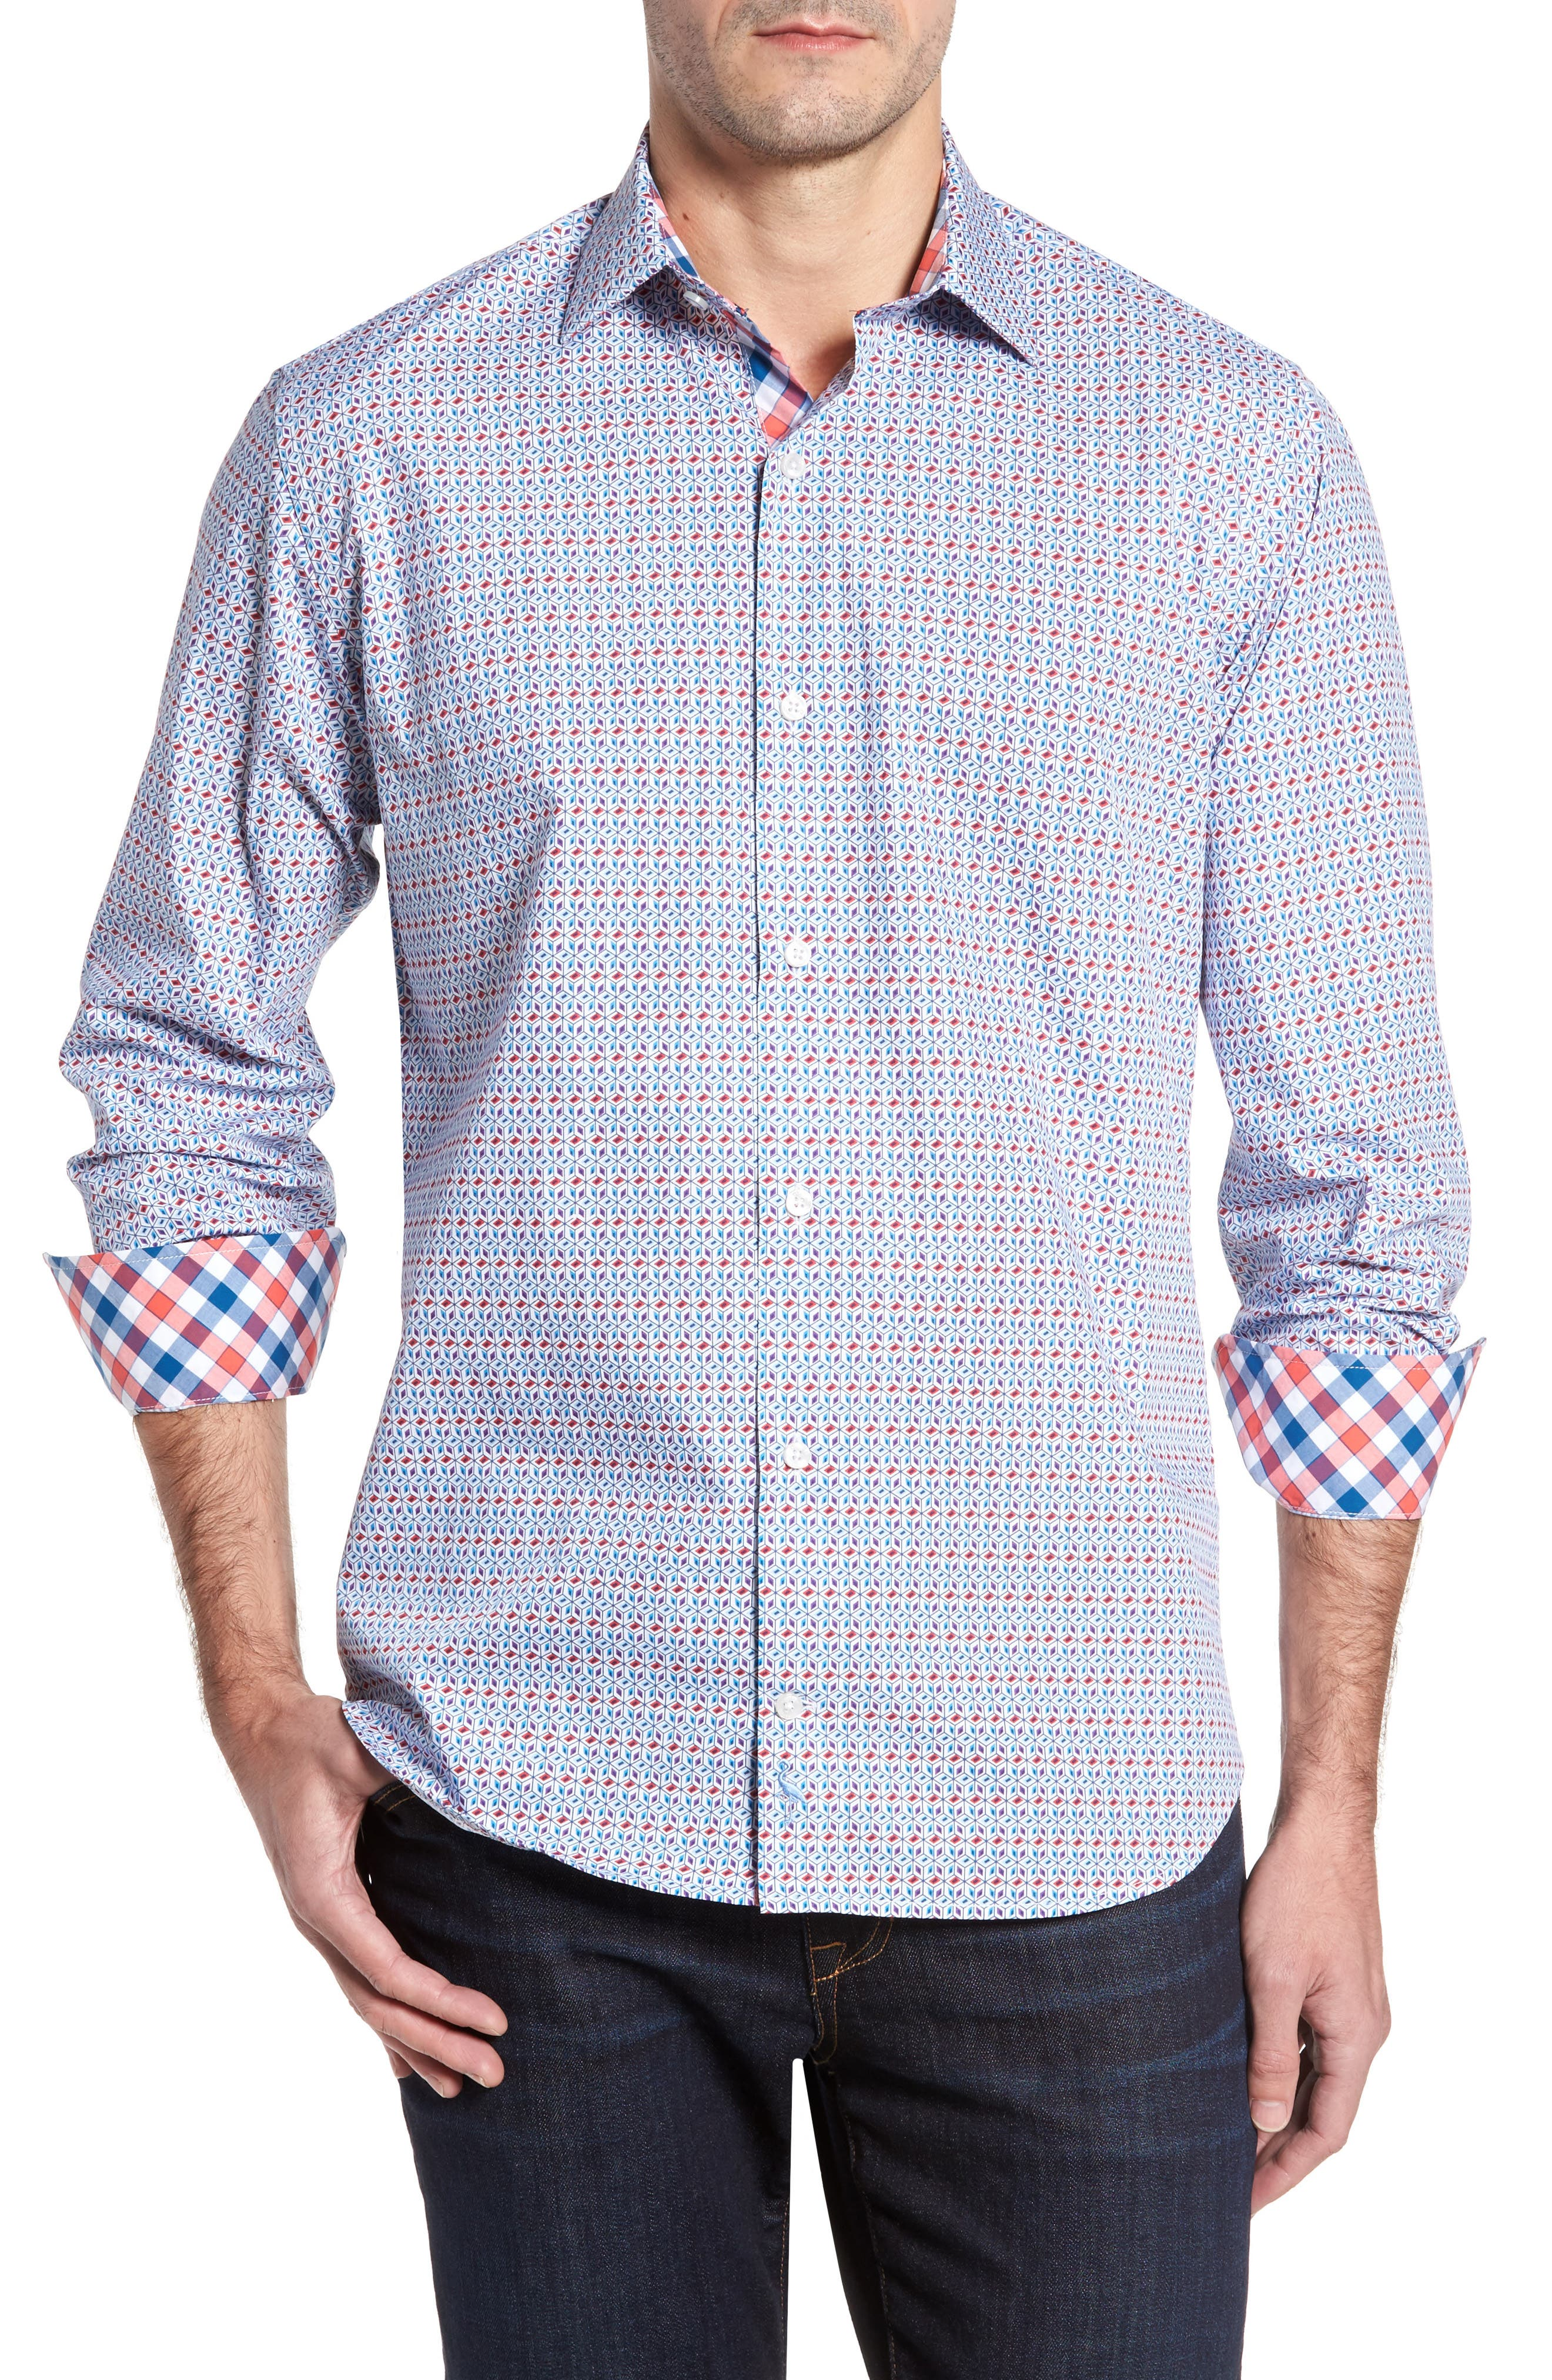 TailorByrd Angia Print Sport Shirt